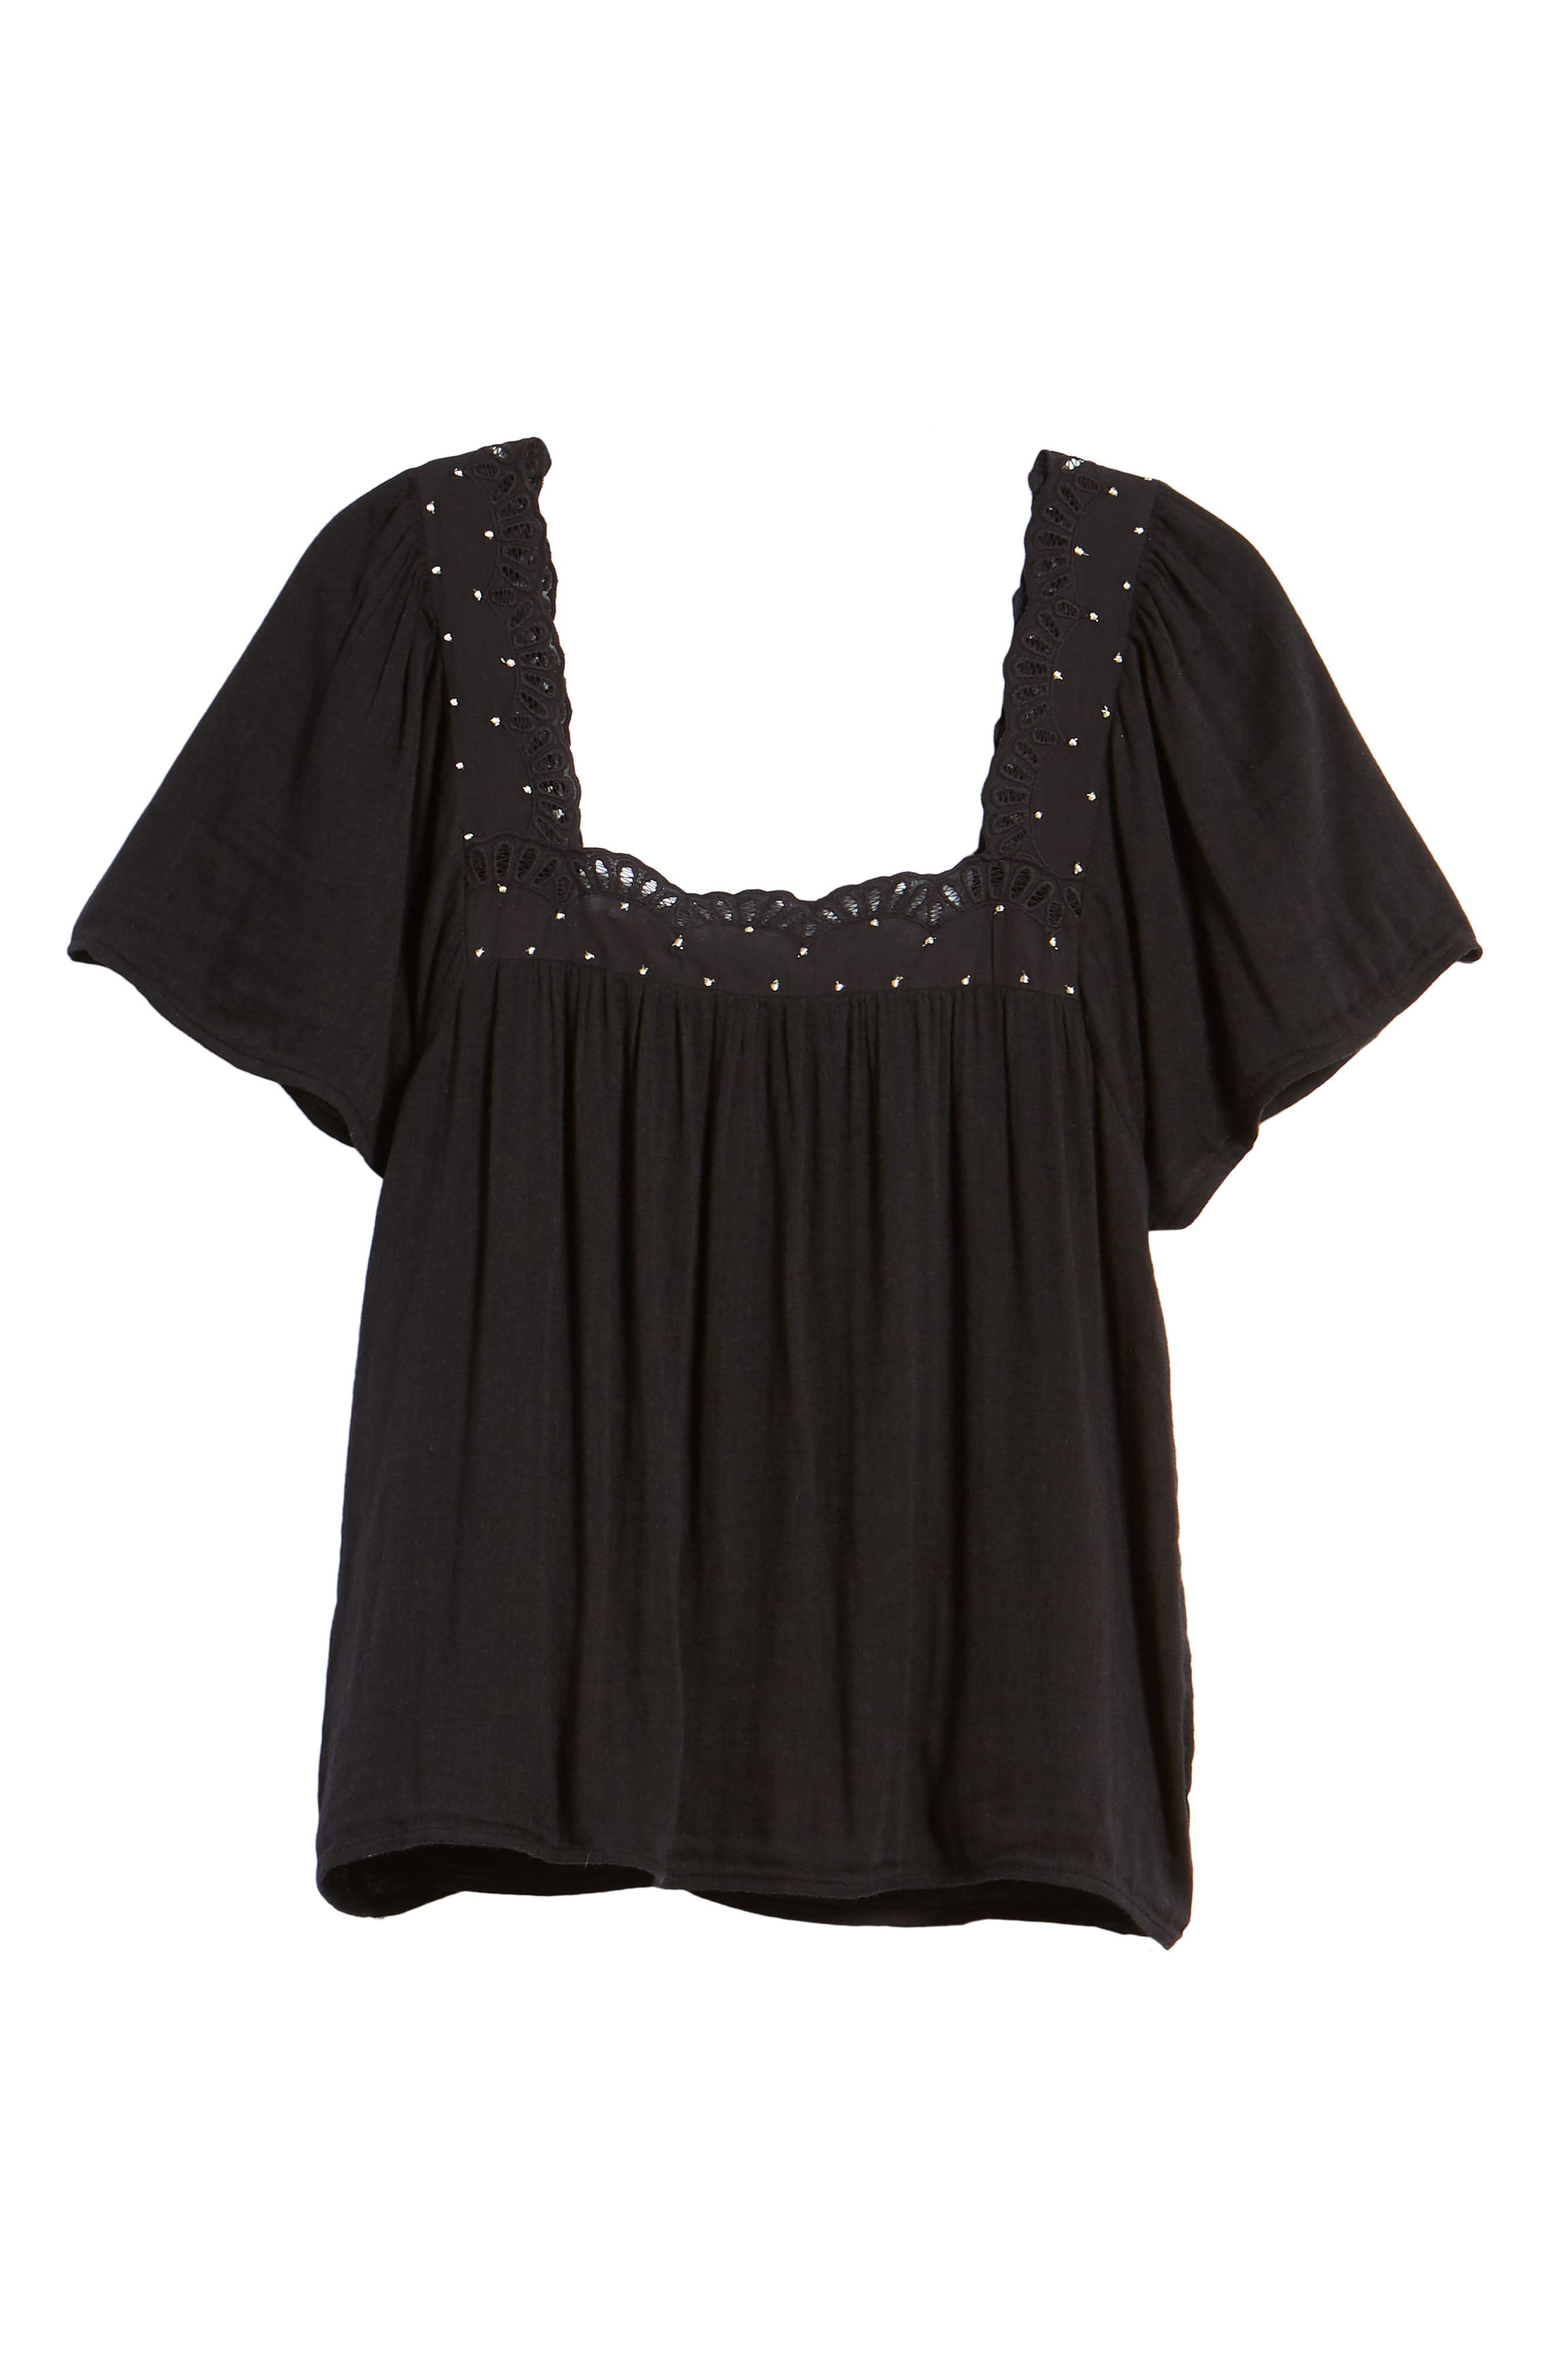 Bea Scalloped Top,                             Alternate thumbnail 7, color,                             Black